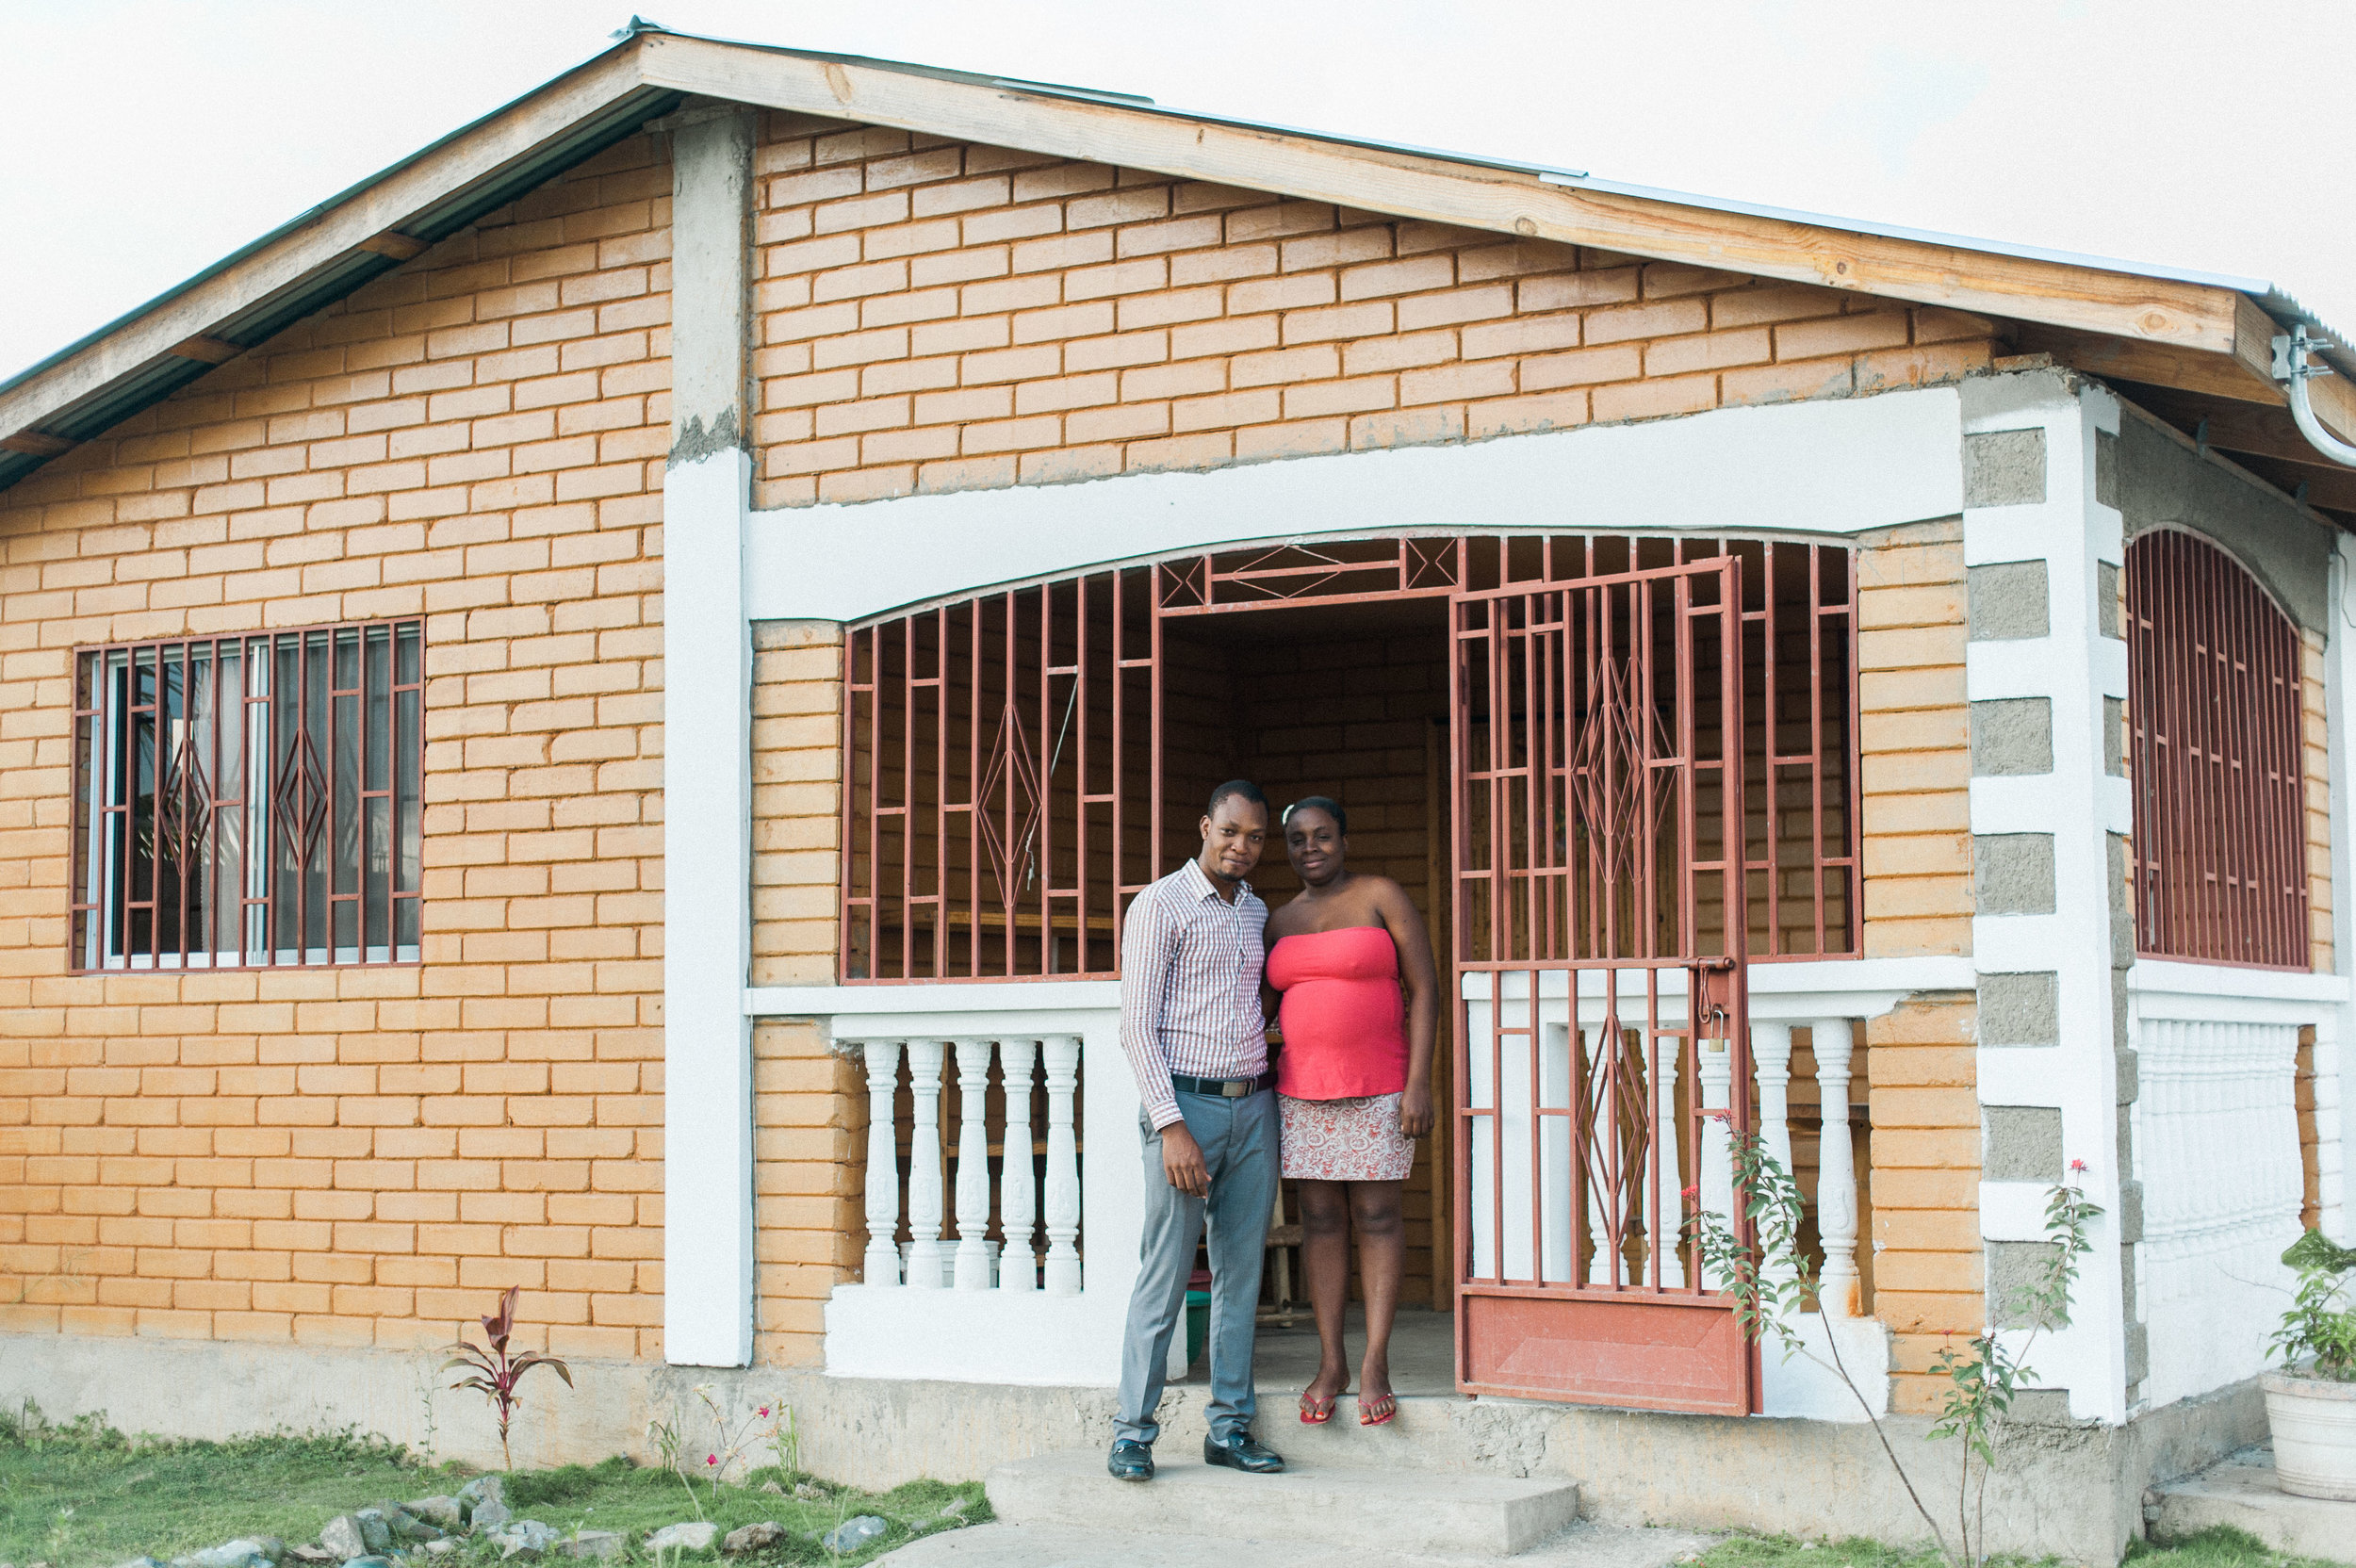 Manuacha and her husband on the front porch of their new earth block home.